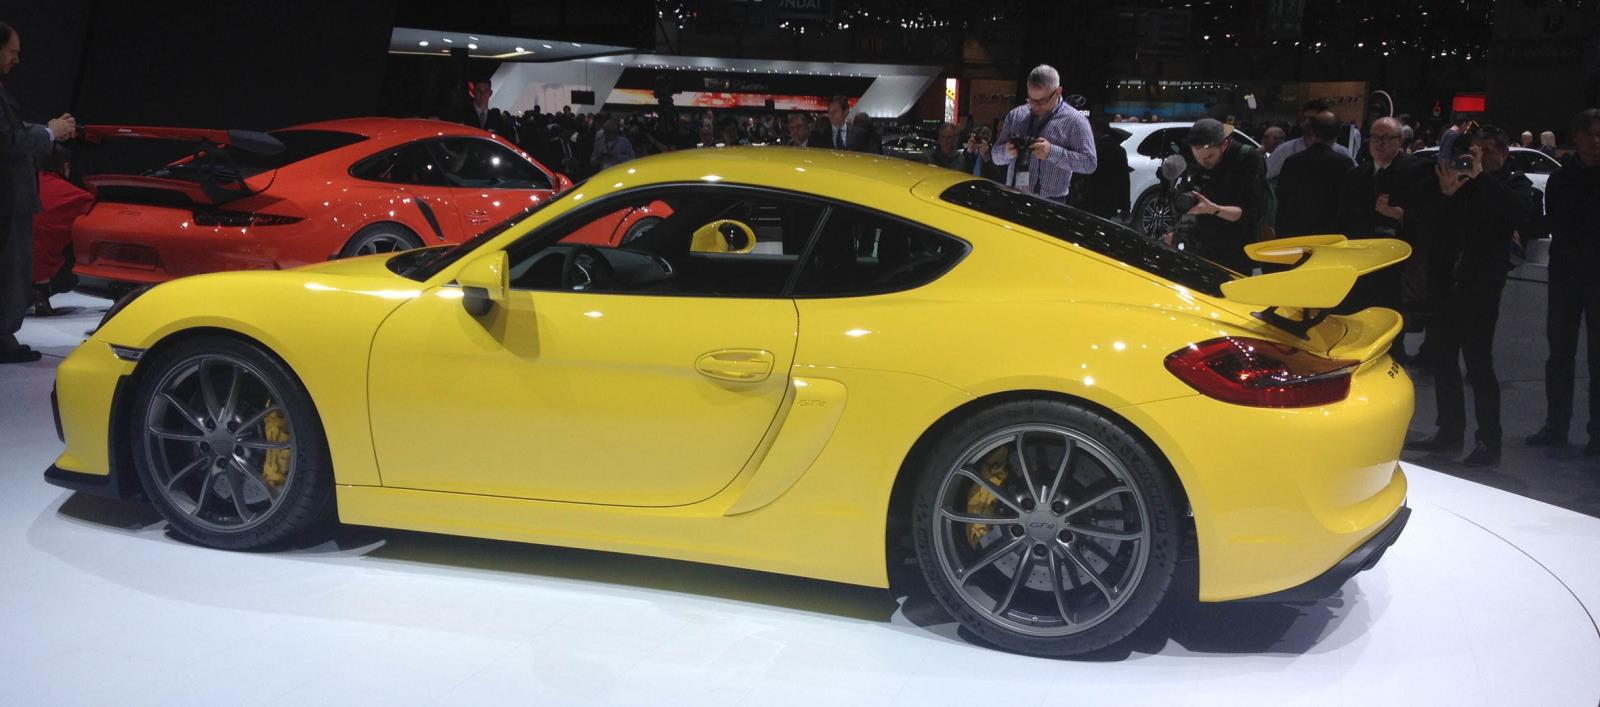 Michelin Cayman GT4 e1427116150577